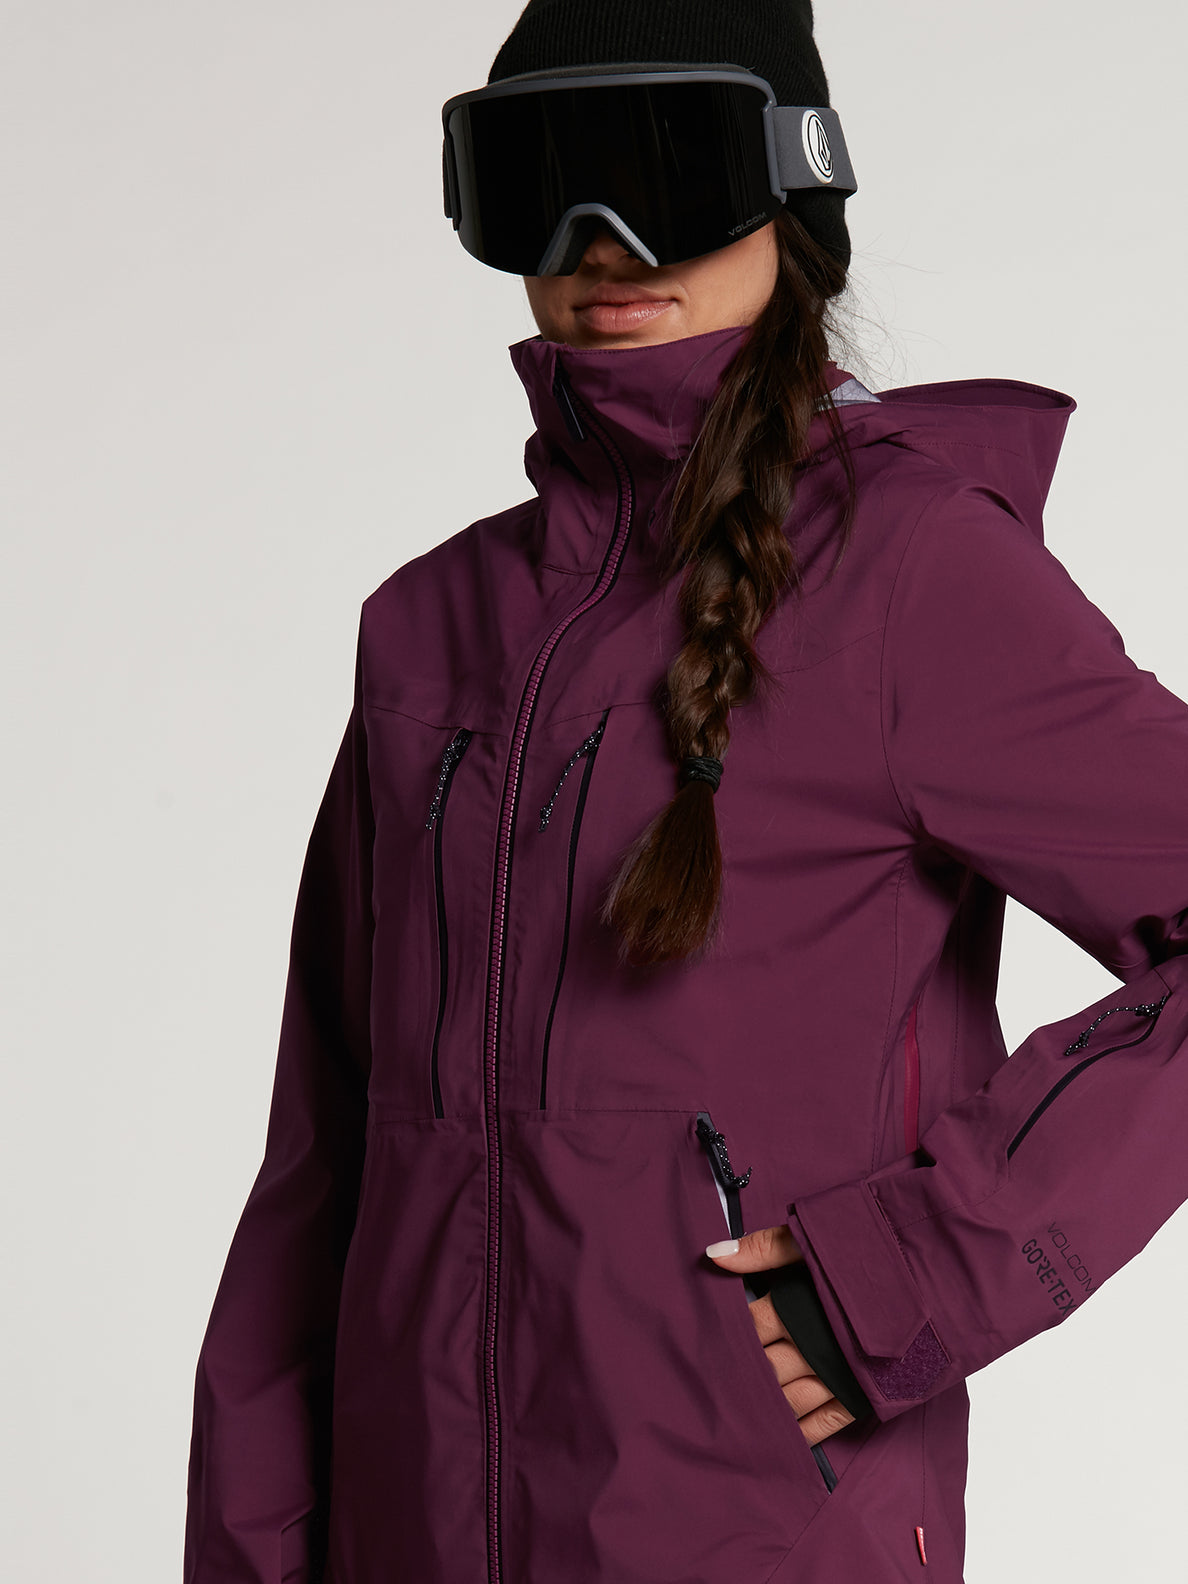 Womens VS Stretch GORE-TEX Jacket - Vibrant Purple (H0652103_VIB) [4]